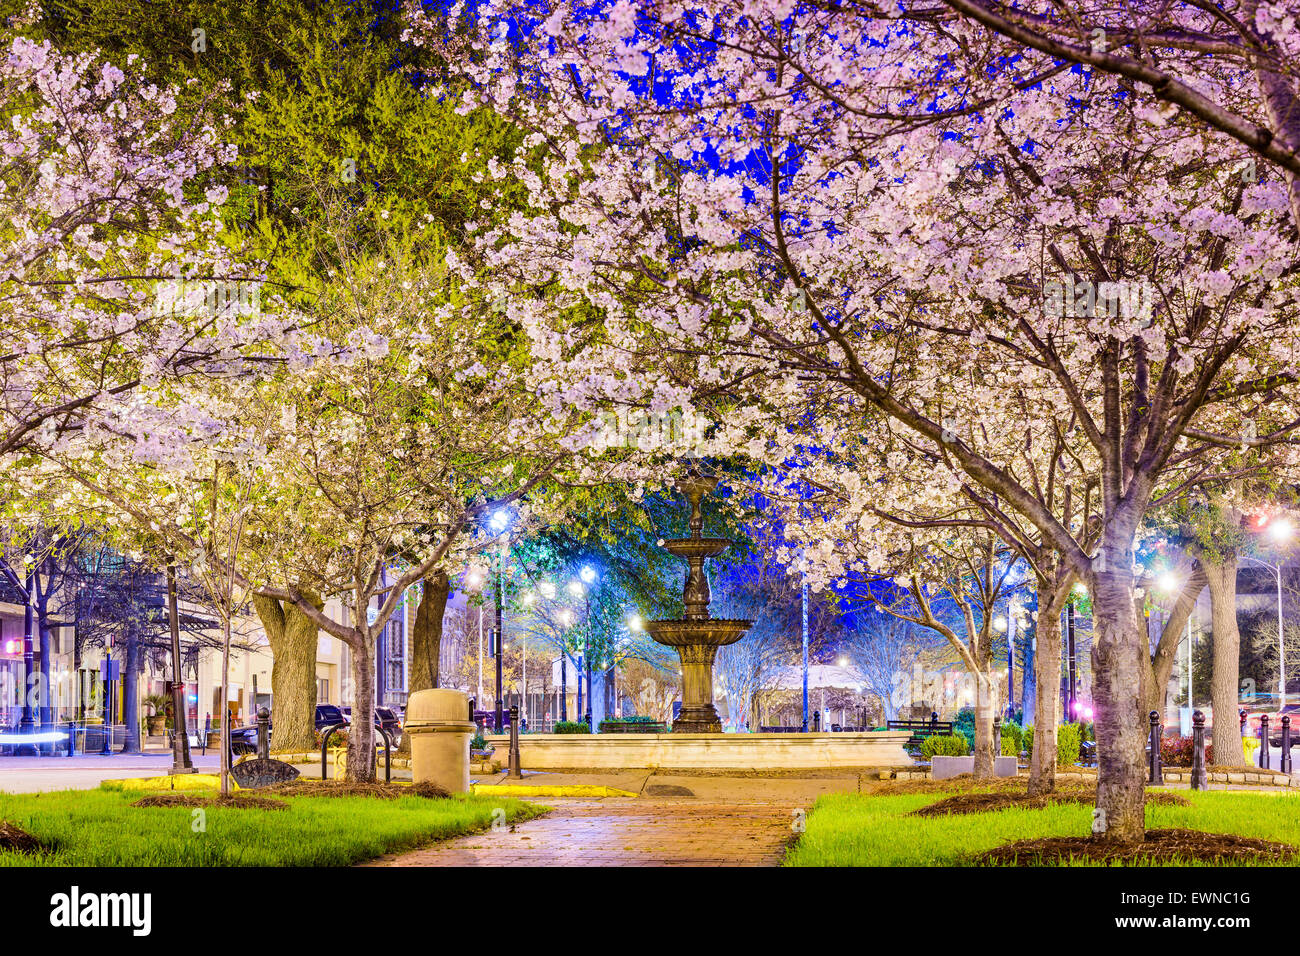 Macon, Georgia, USA downtown with spring cherry blossoms. - Stock Image